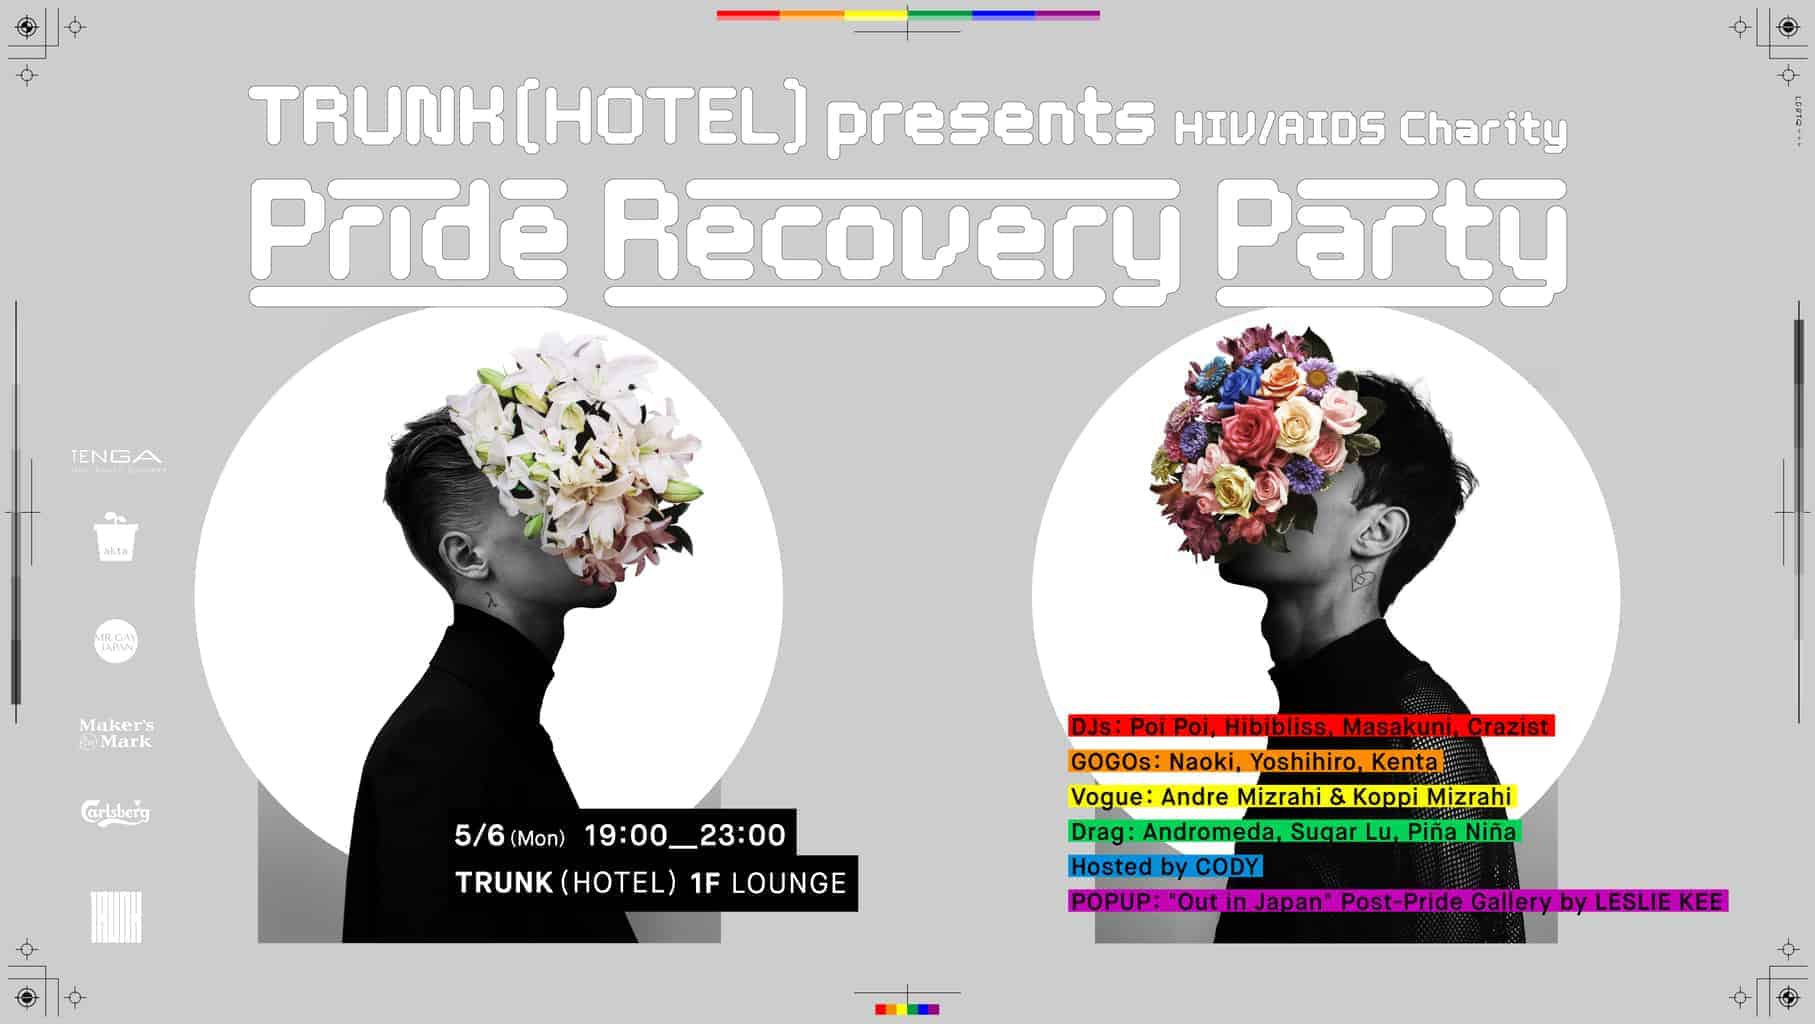 TRUNK (HOTEL) Præsenterer Pride Recovery Party